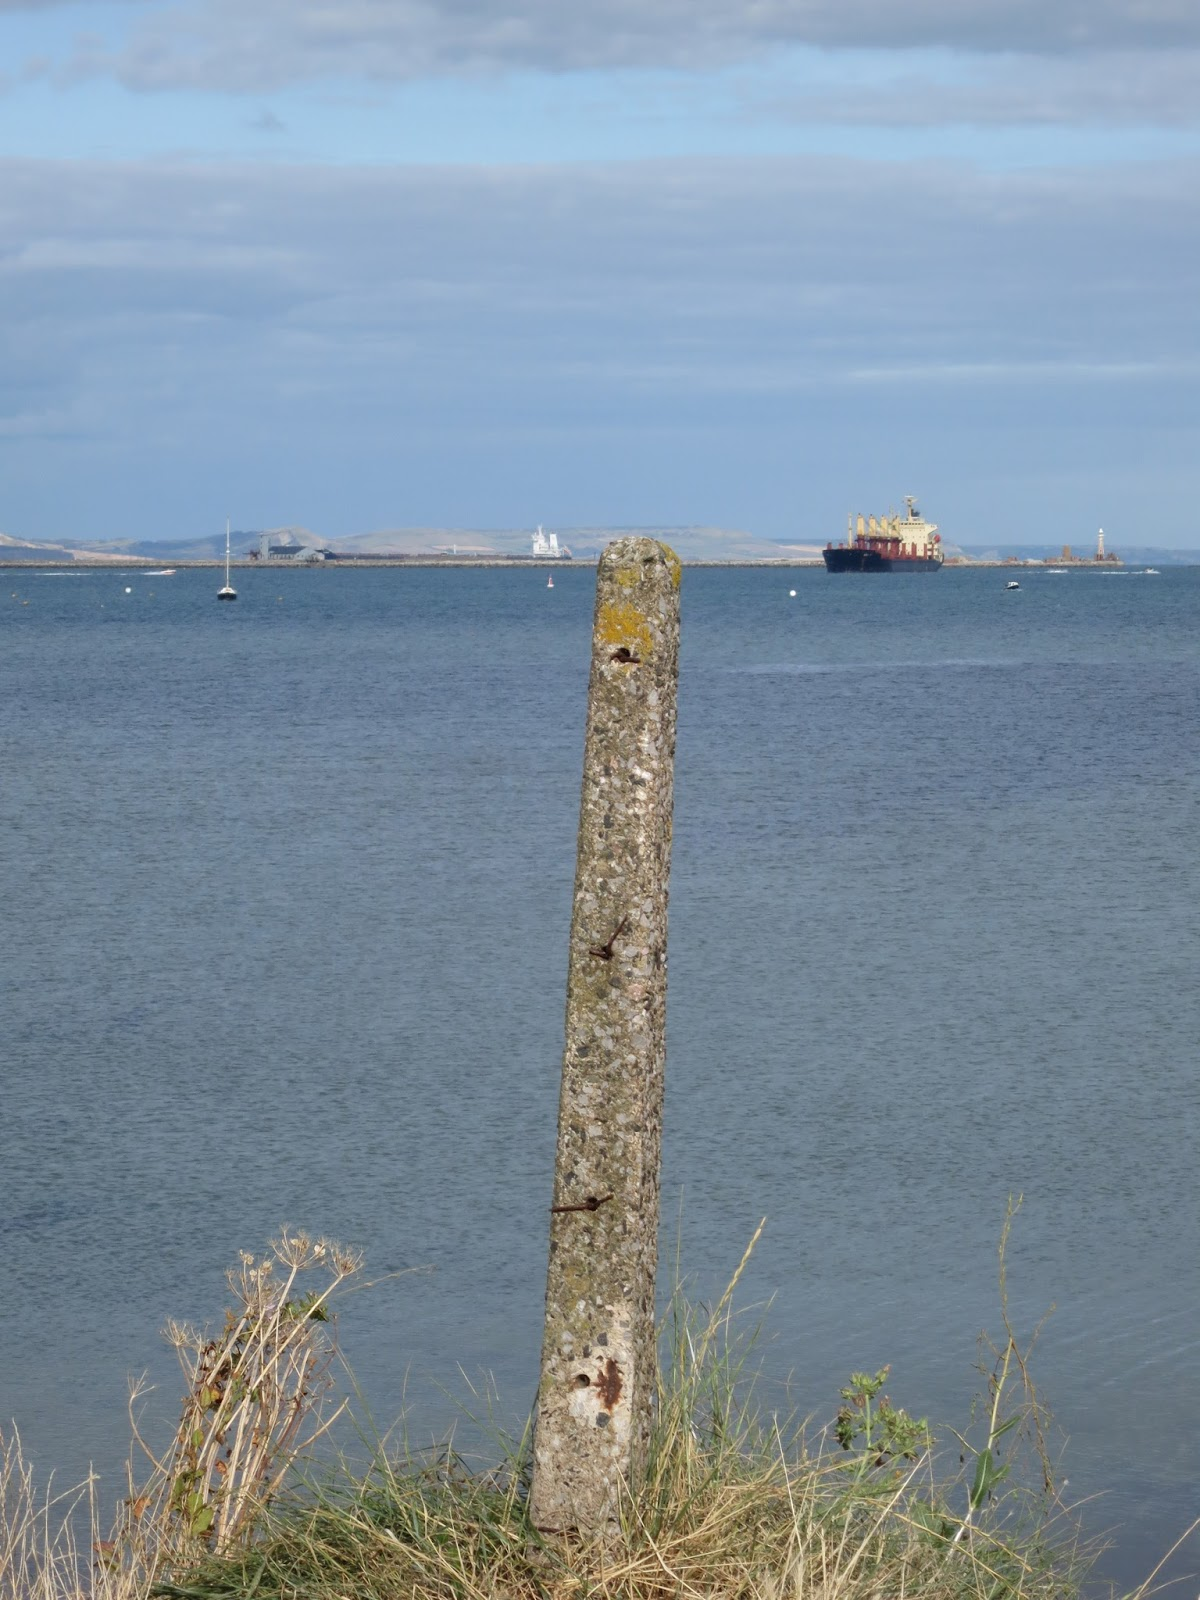 Lopsided concrete post in front of sea with ship and distant hills